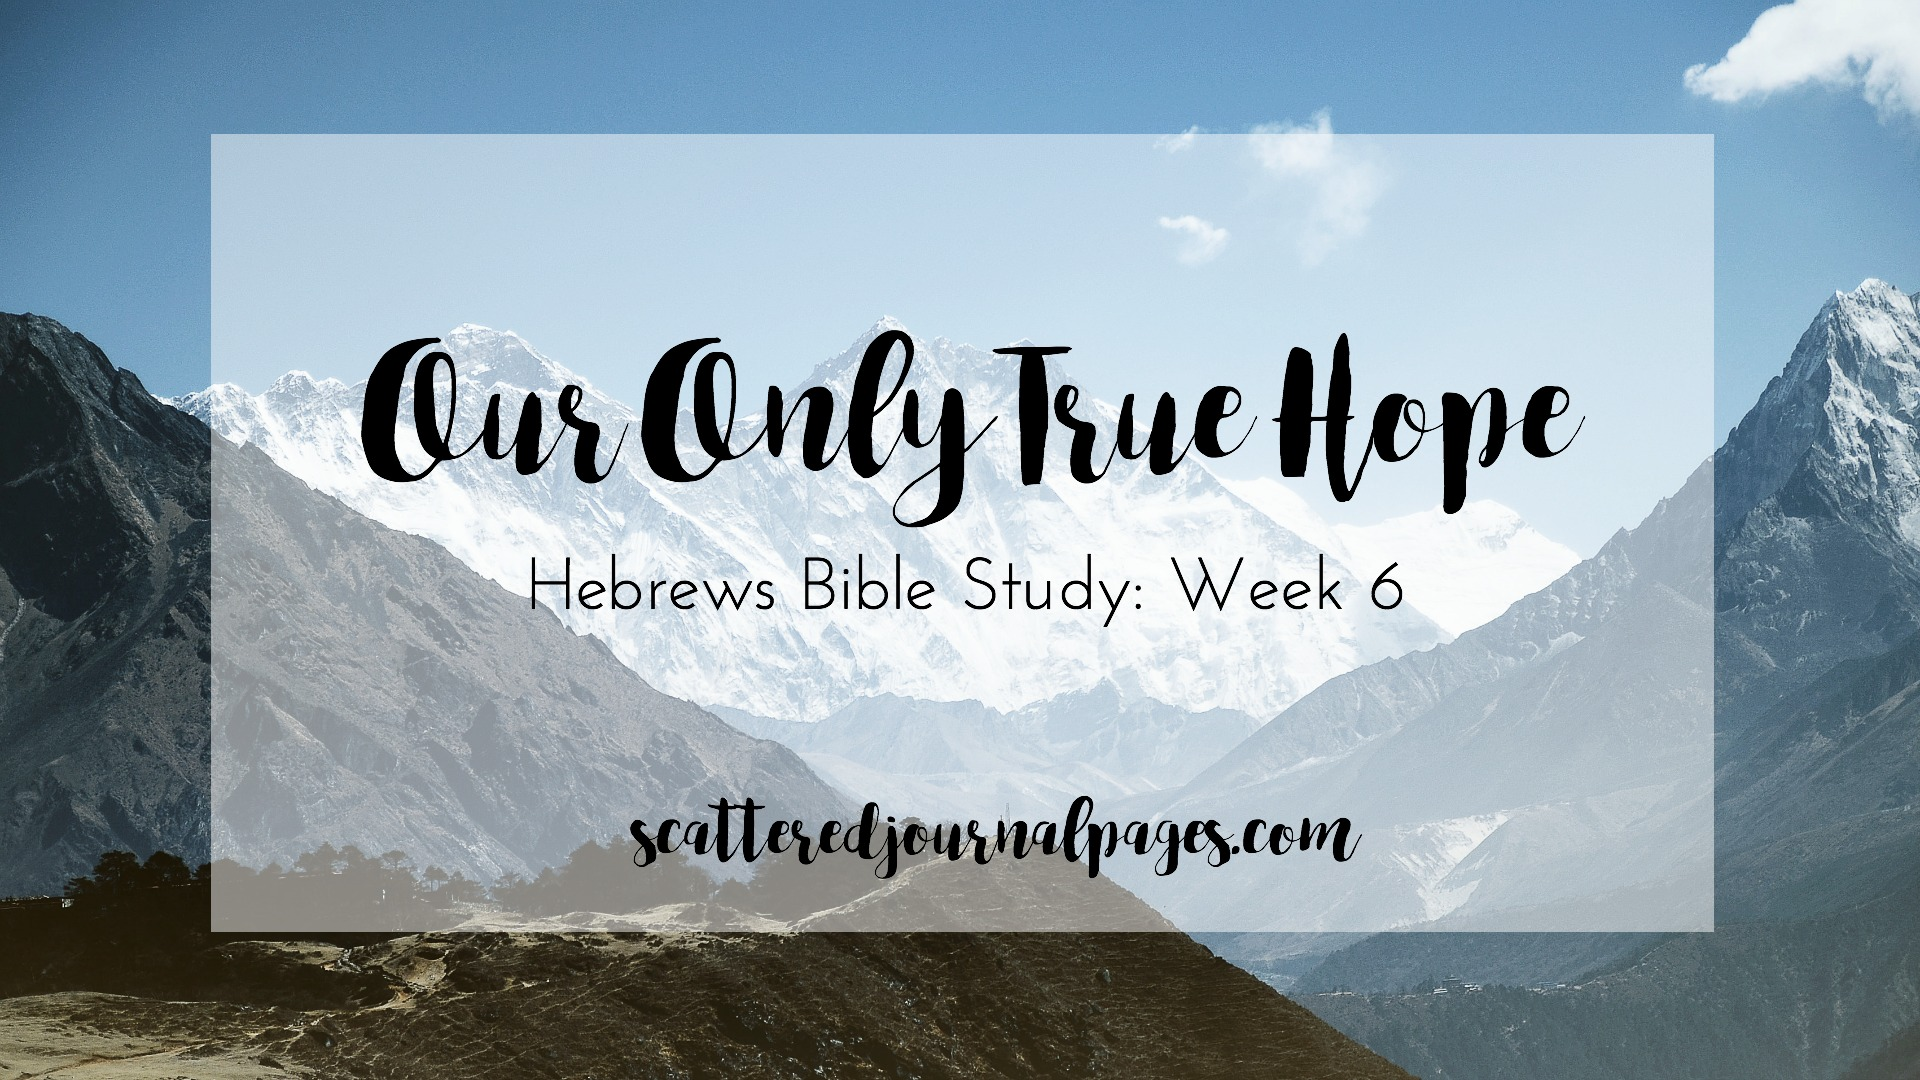 hebrews bible study page Hebrews bible study notes by email from john karmelich you can study the bible using notes sent to you by email from john karmelich.